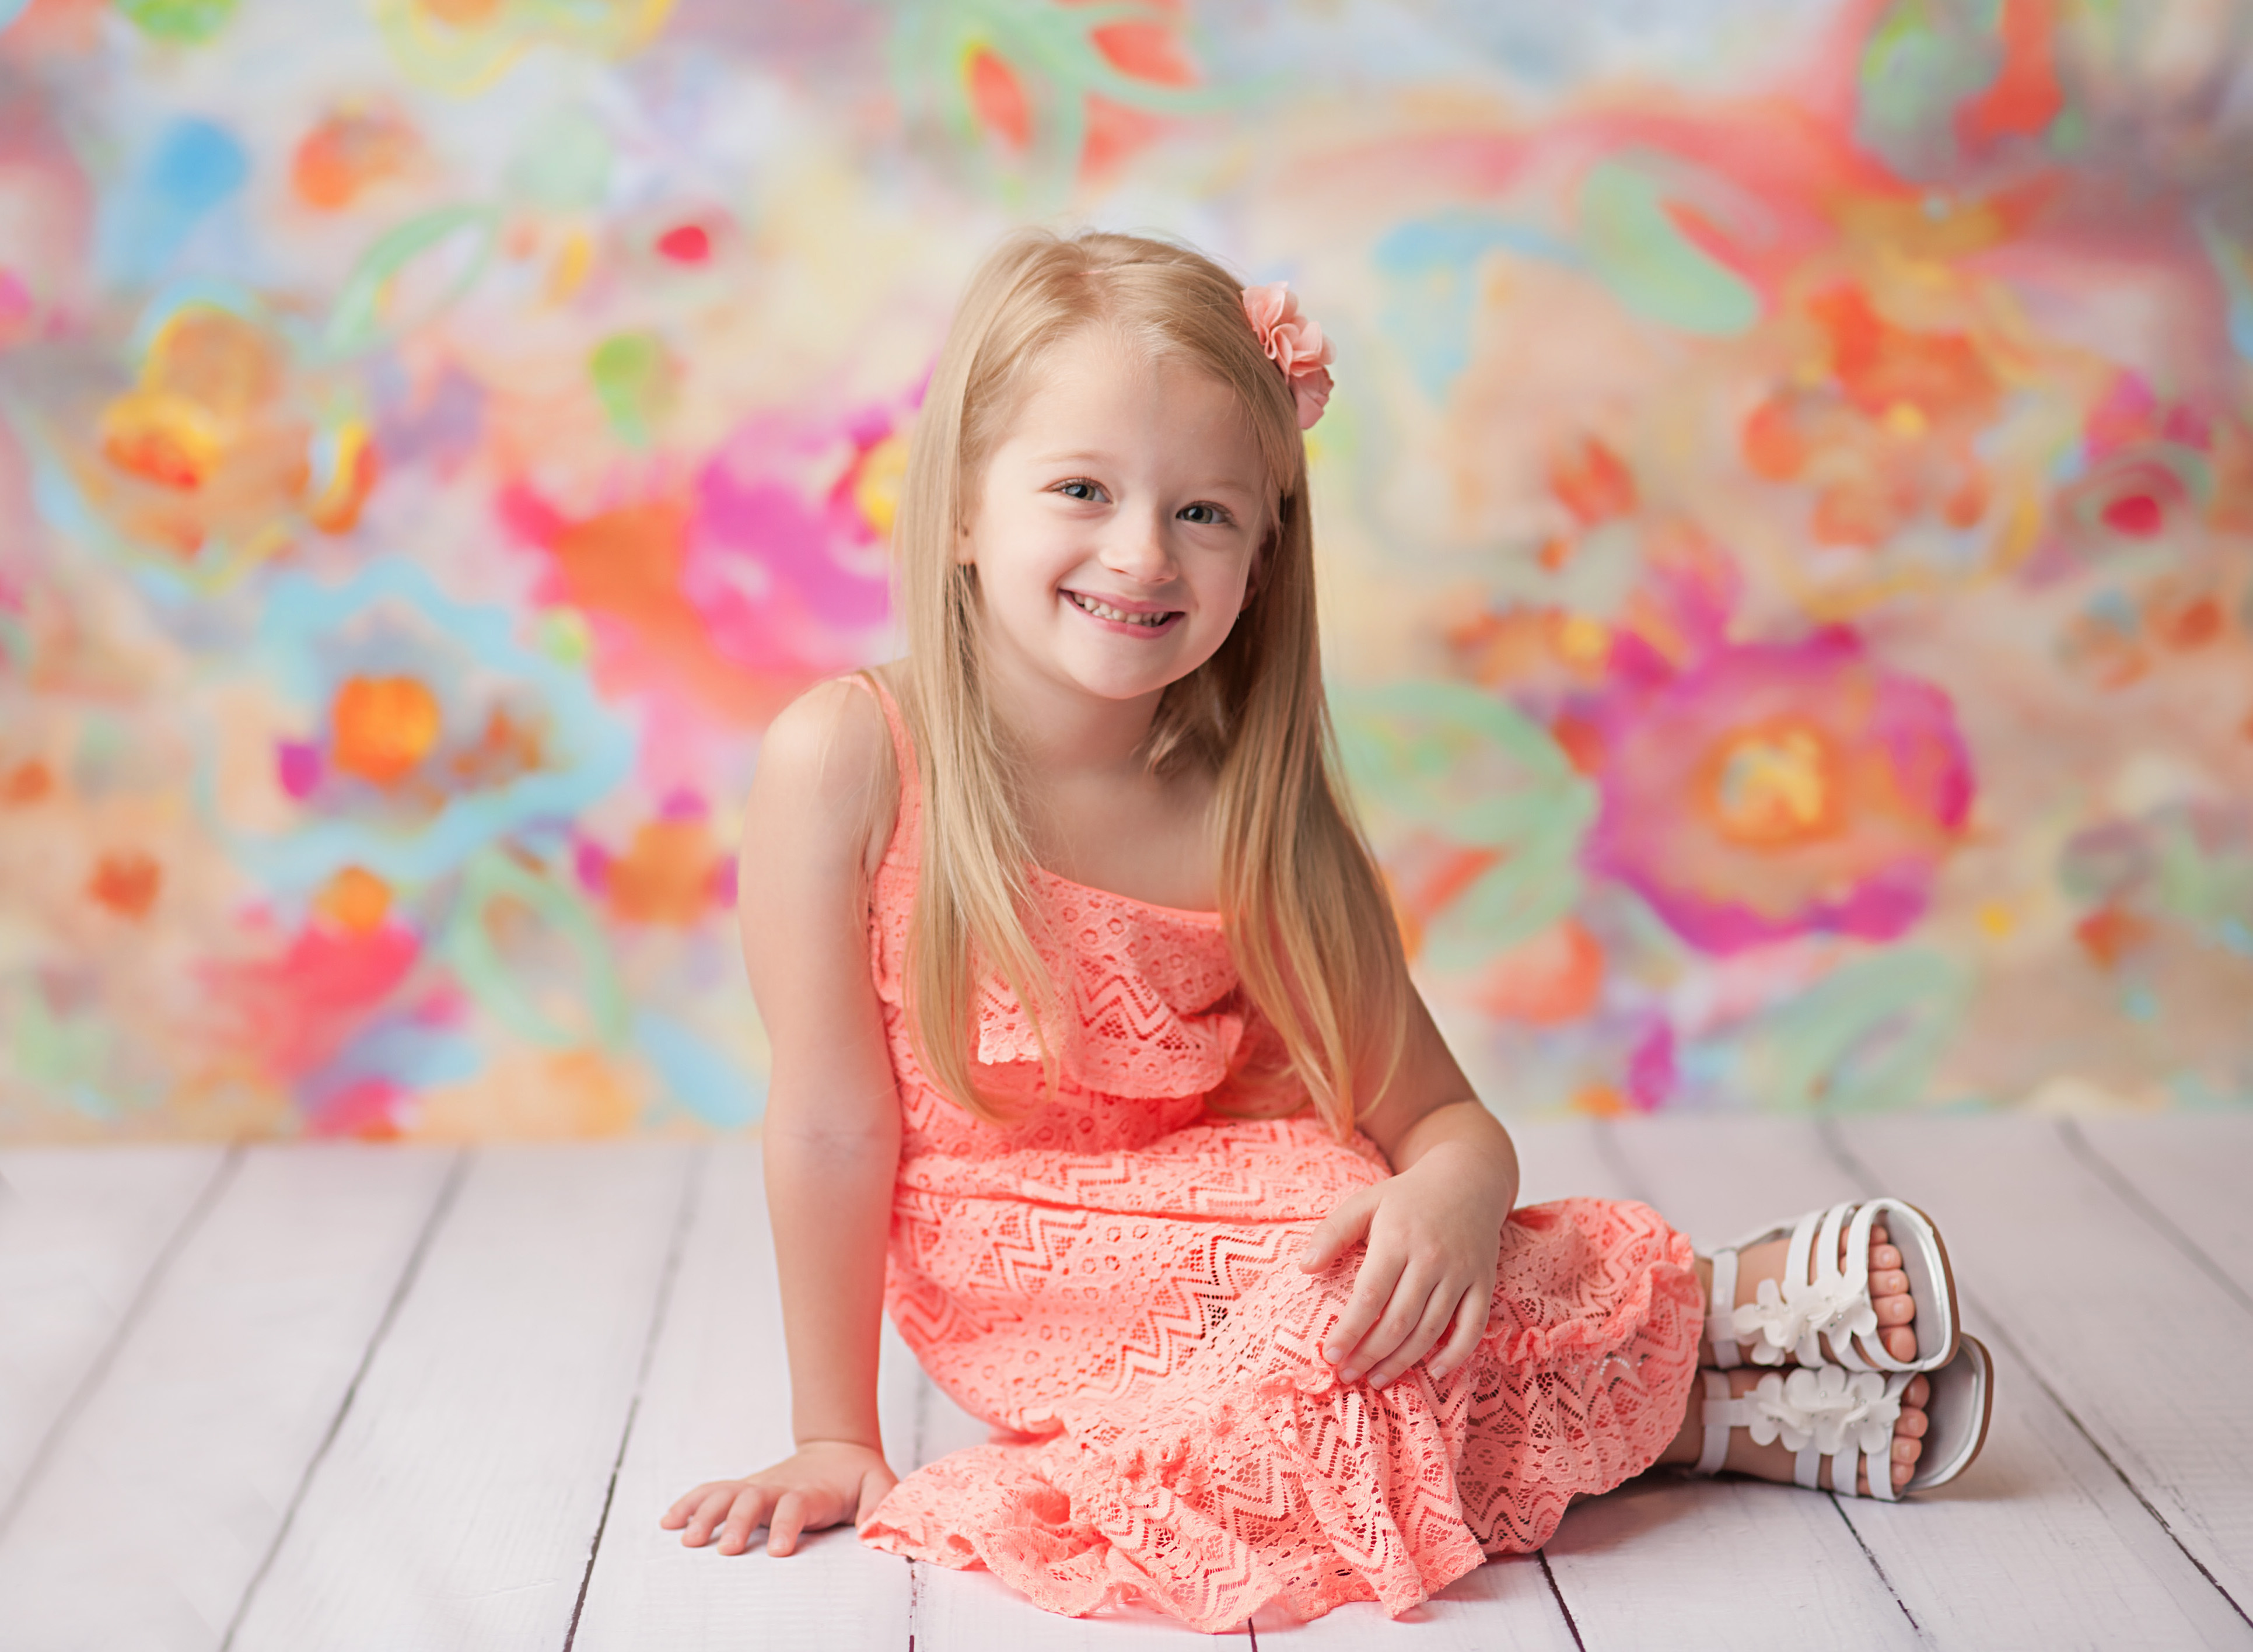 girl sitting against bright floral backdrop